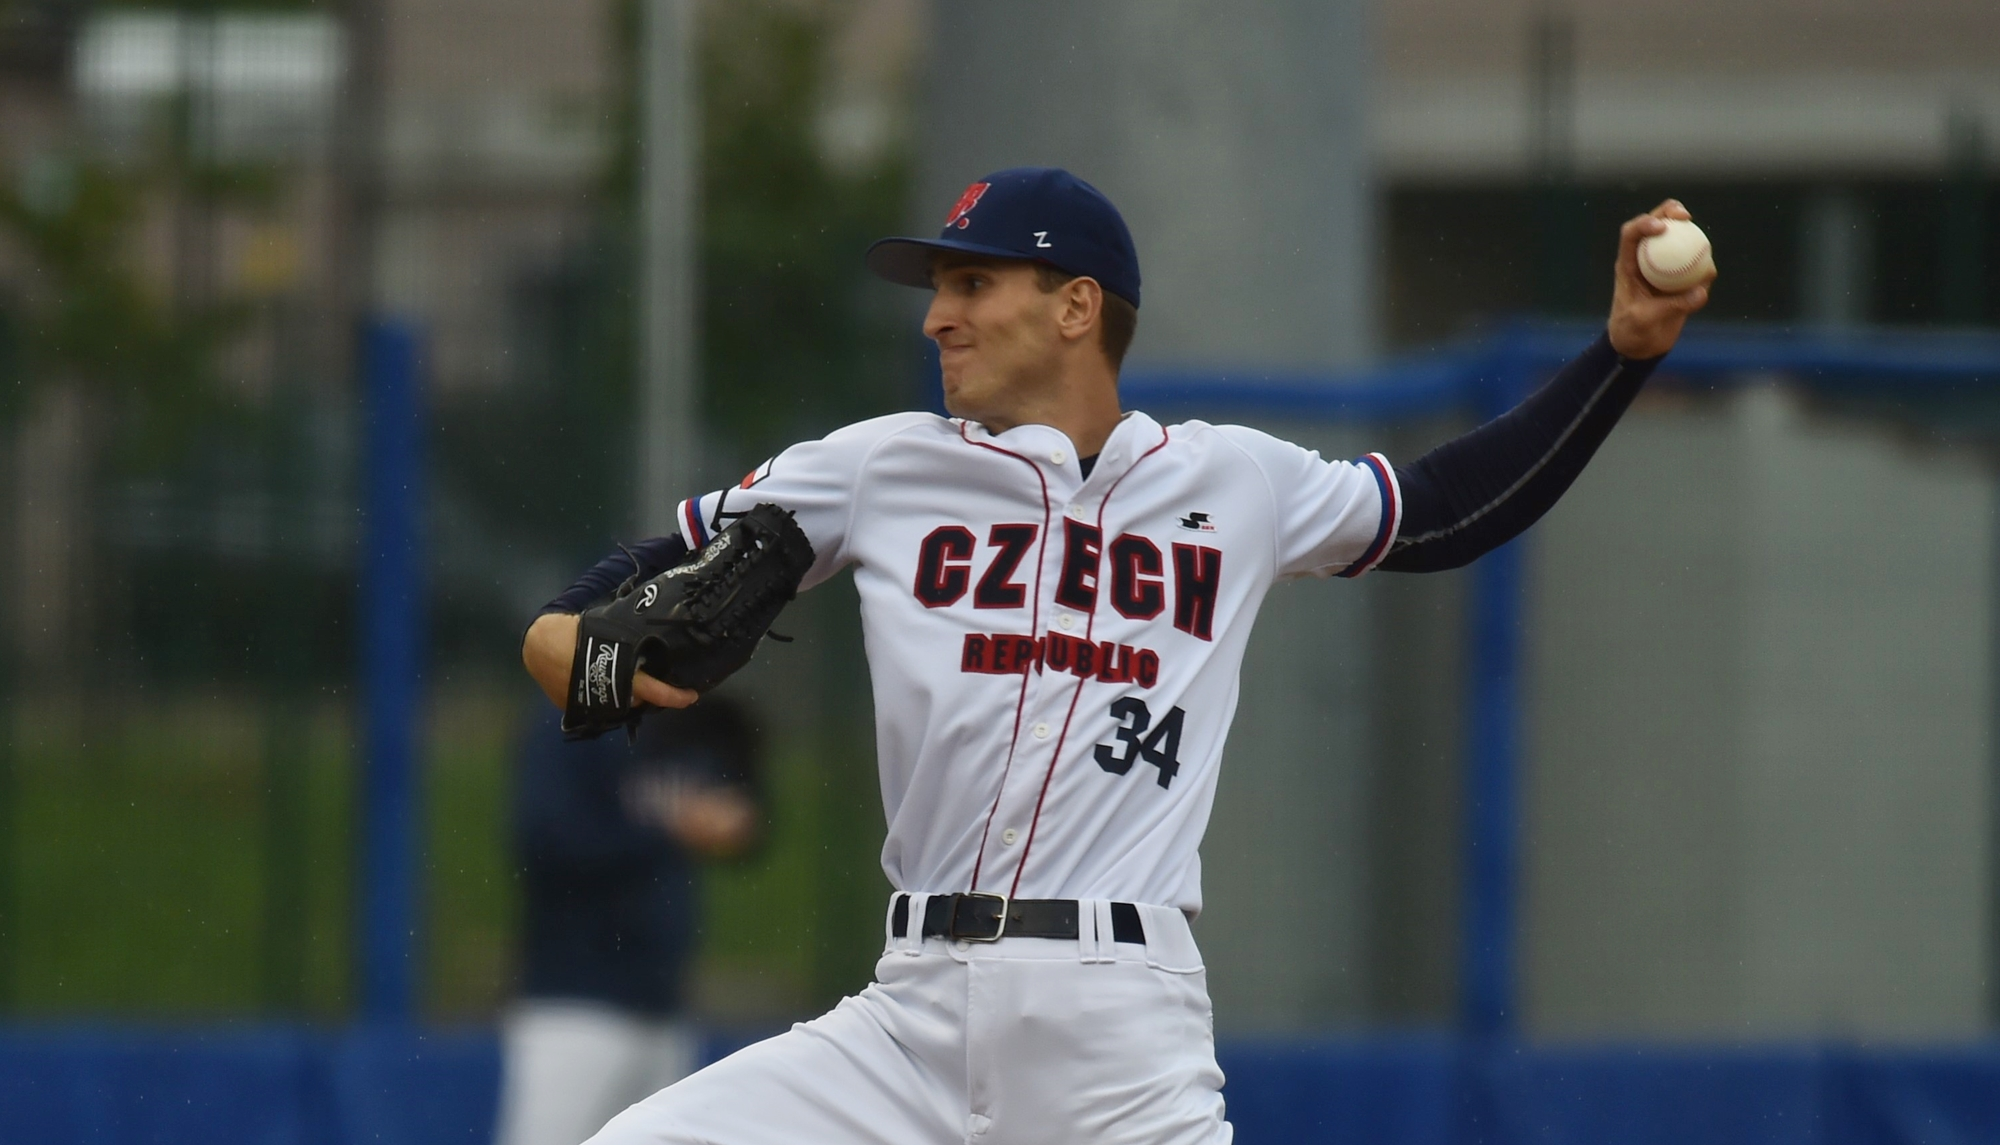 Jn Novak pitched six innings for the Czech Republic